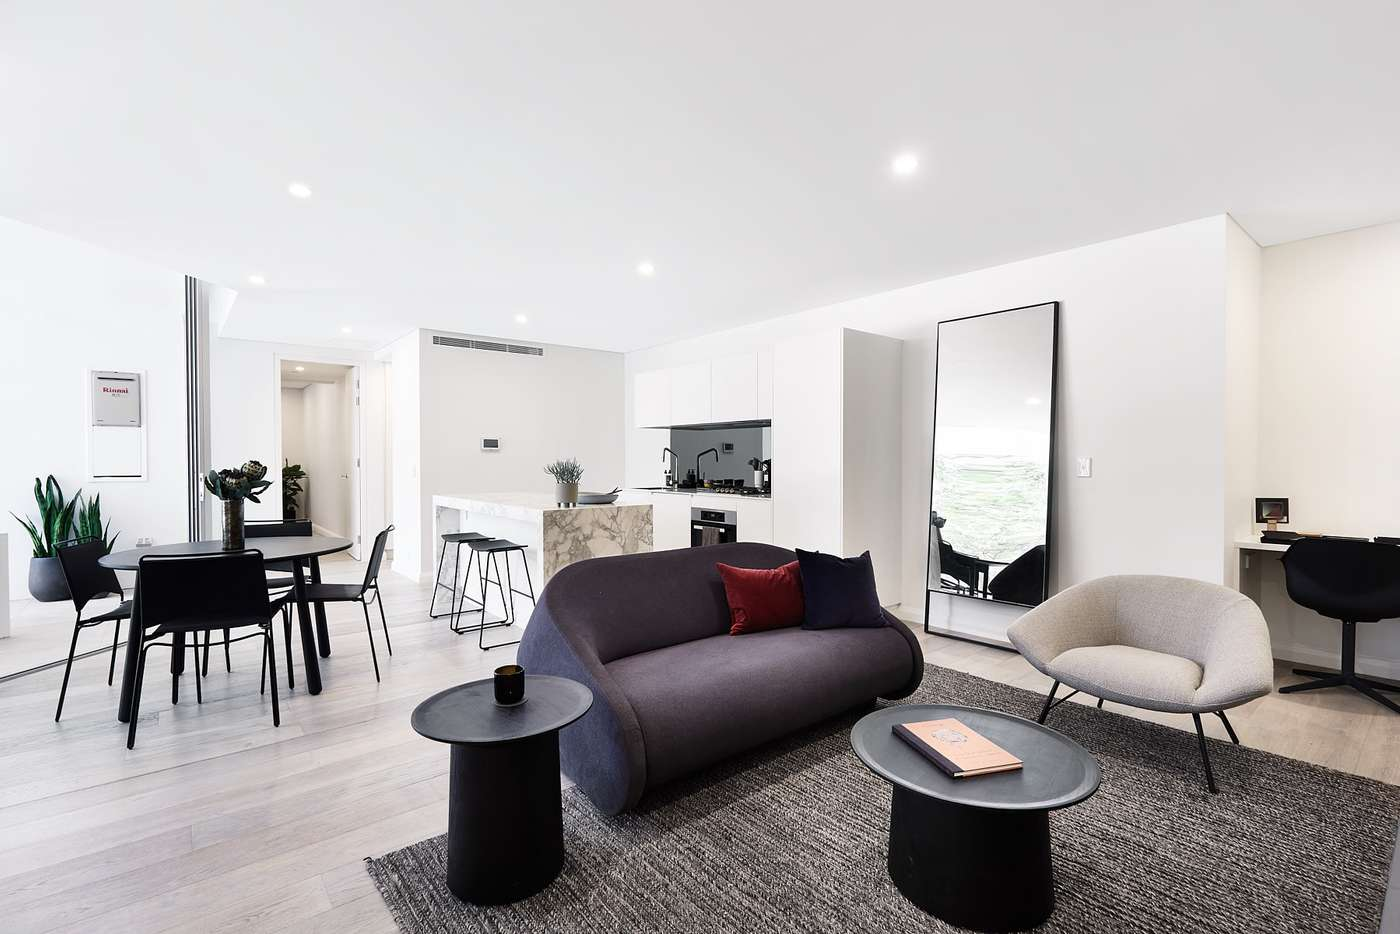 Main view of Homely apartment listing, 2/425 Bourke St, Surry Hills NSW 2010